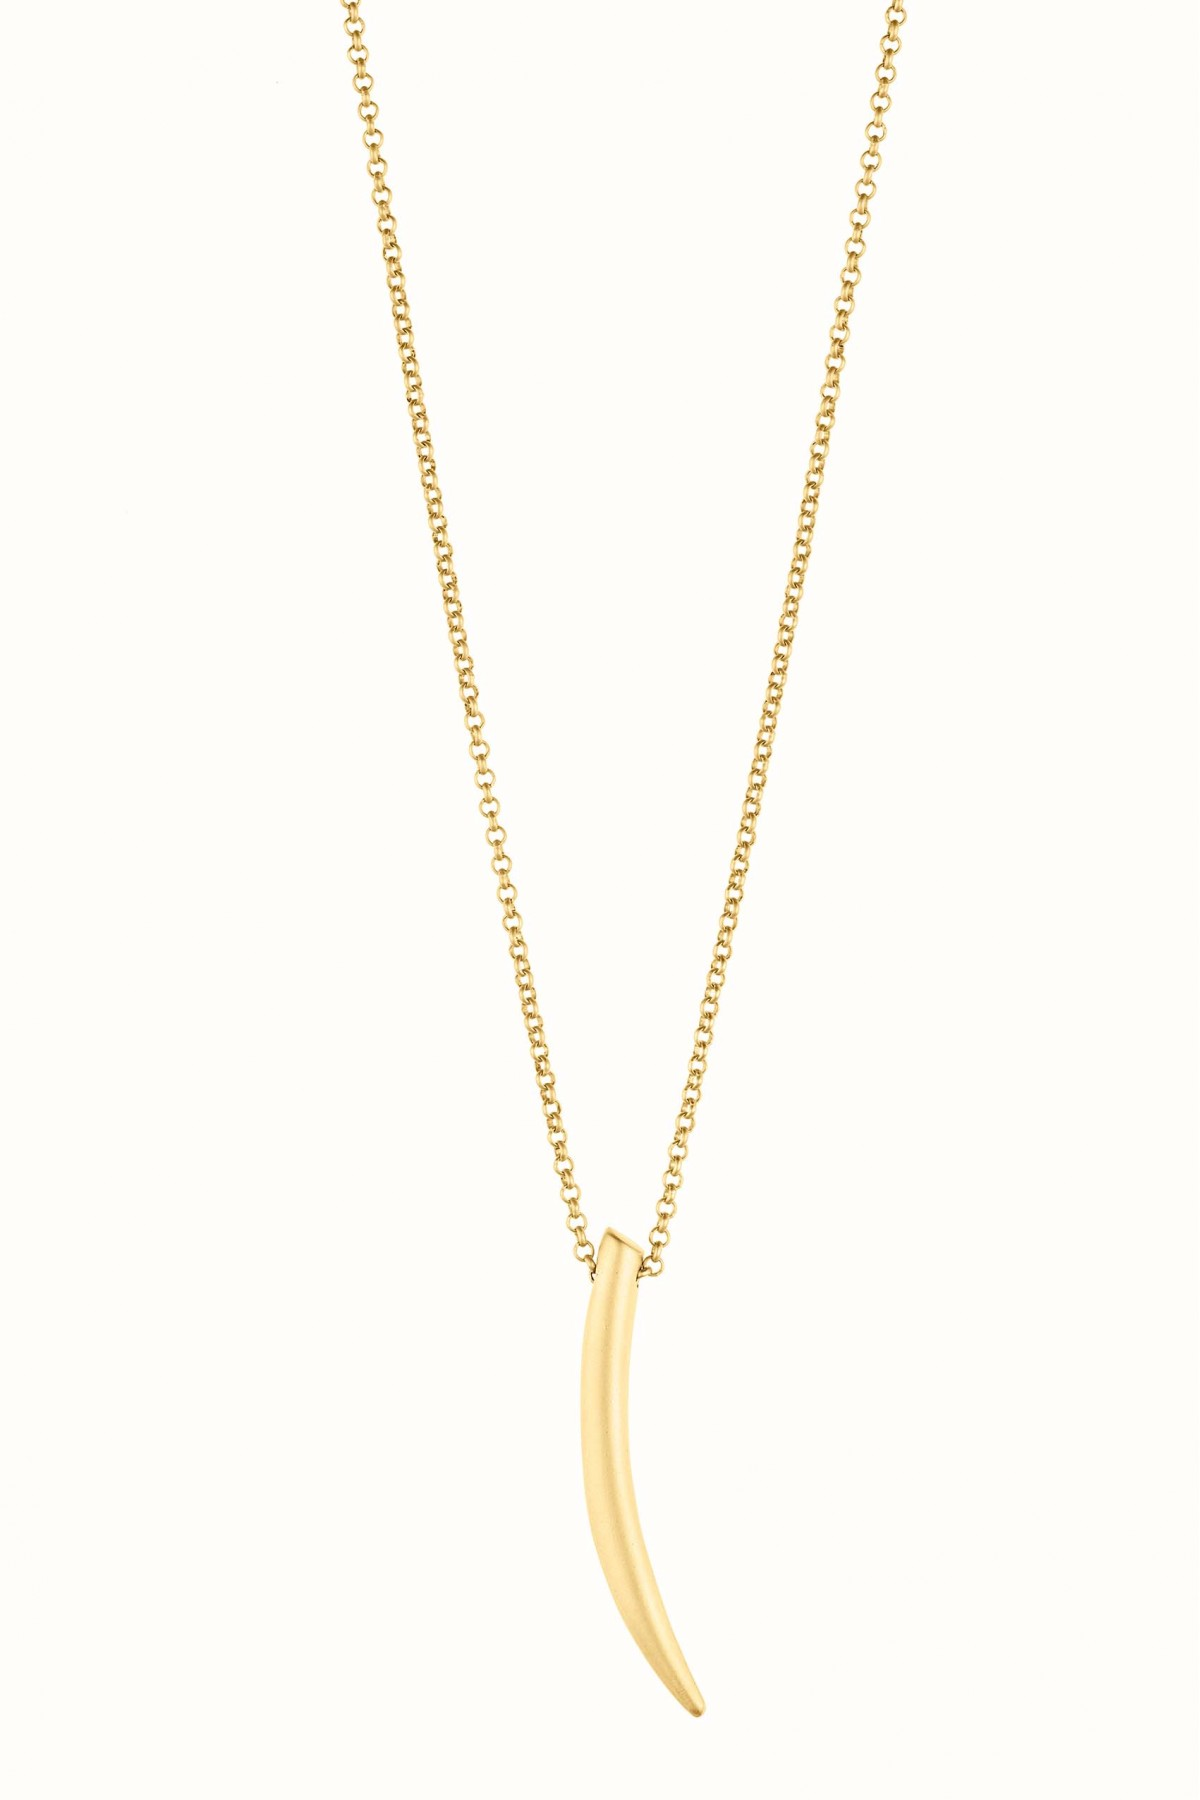 Bing Tusk Necklace